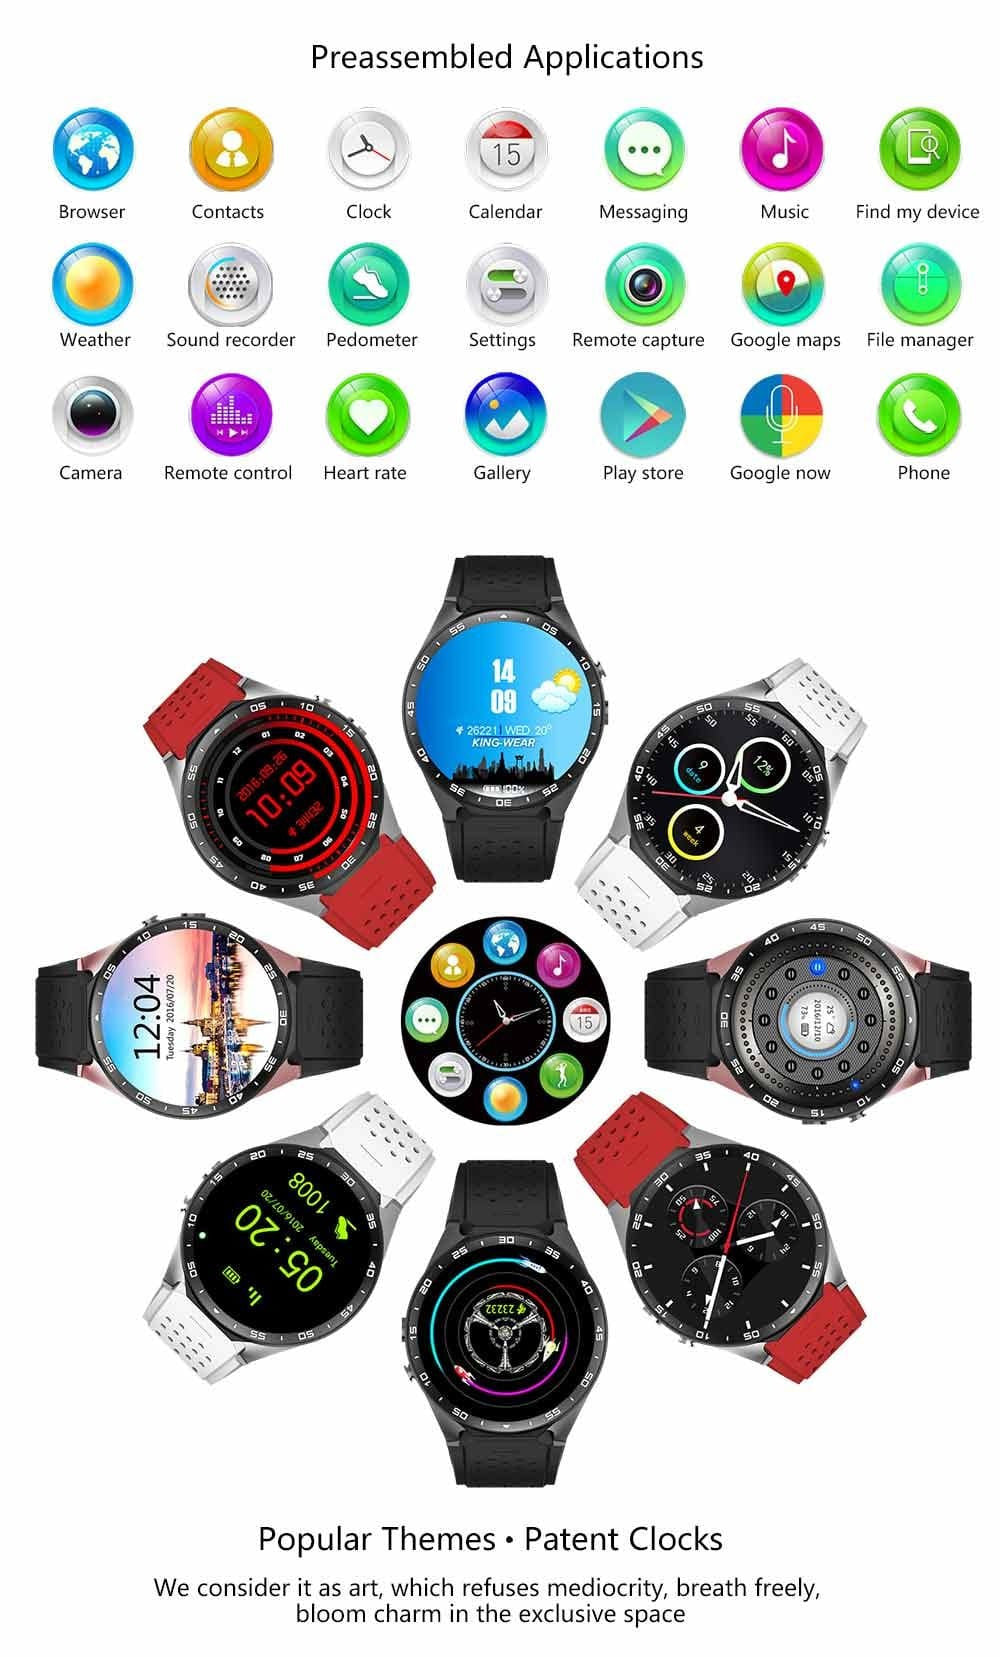 KM8 Premium Android iOS Smartwatch Phone